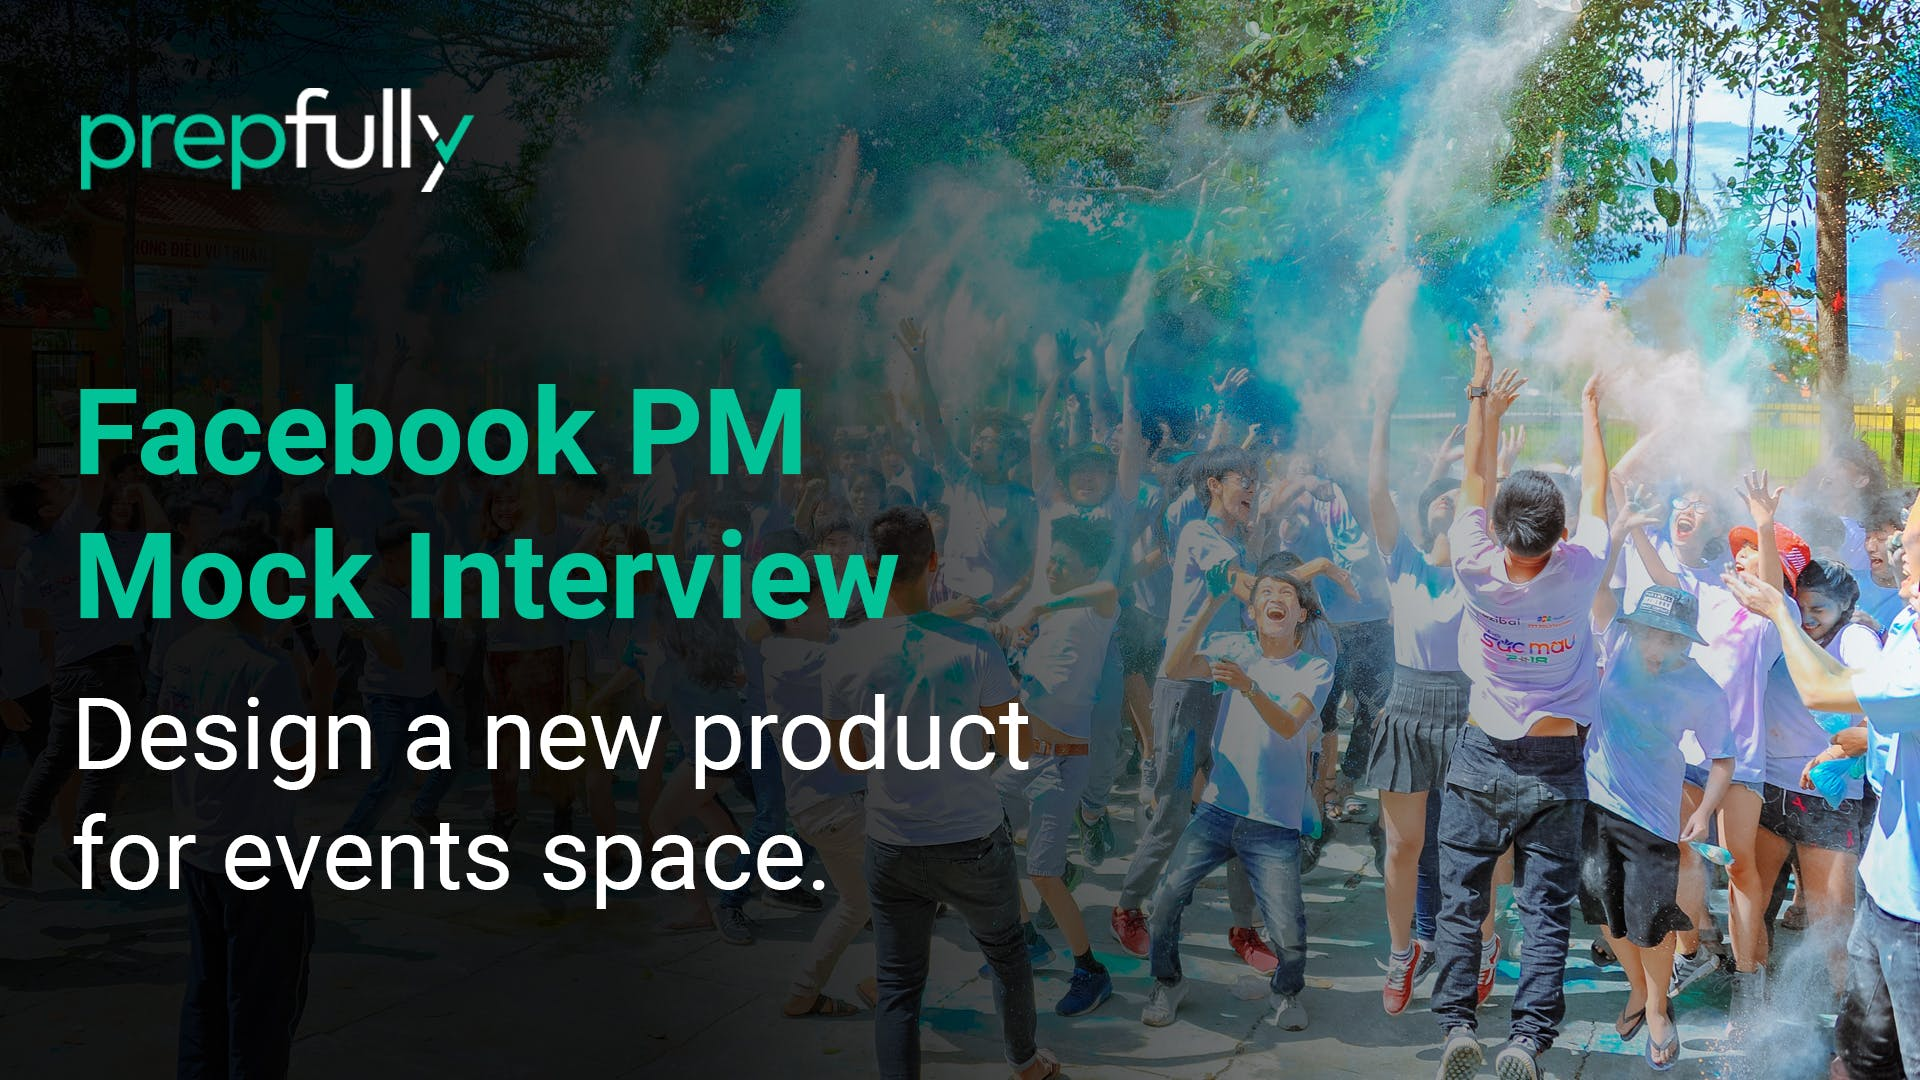 Facebook-PM-Interview-Design-a-new-product-for-events-space